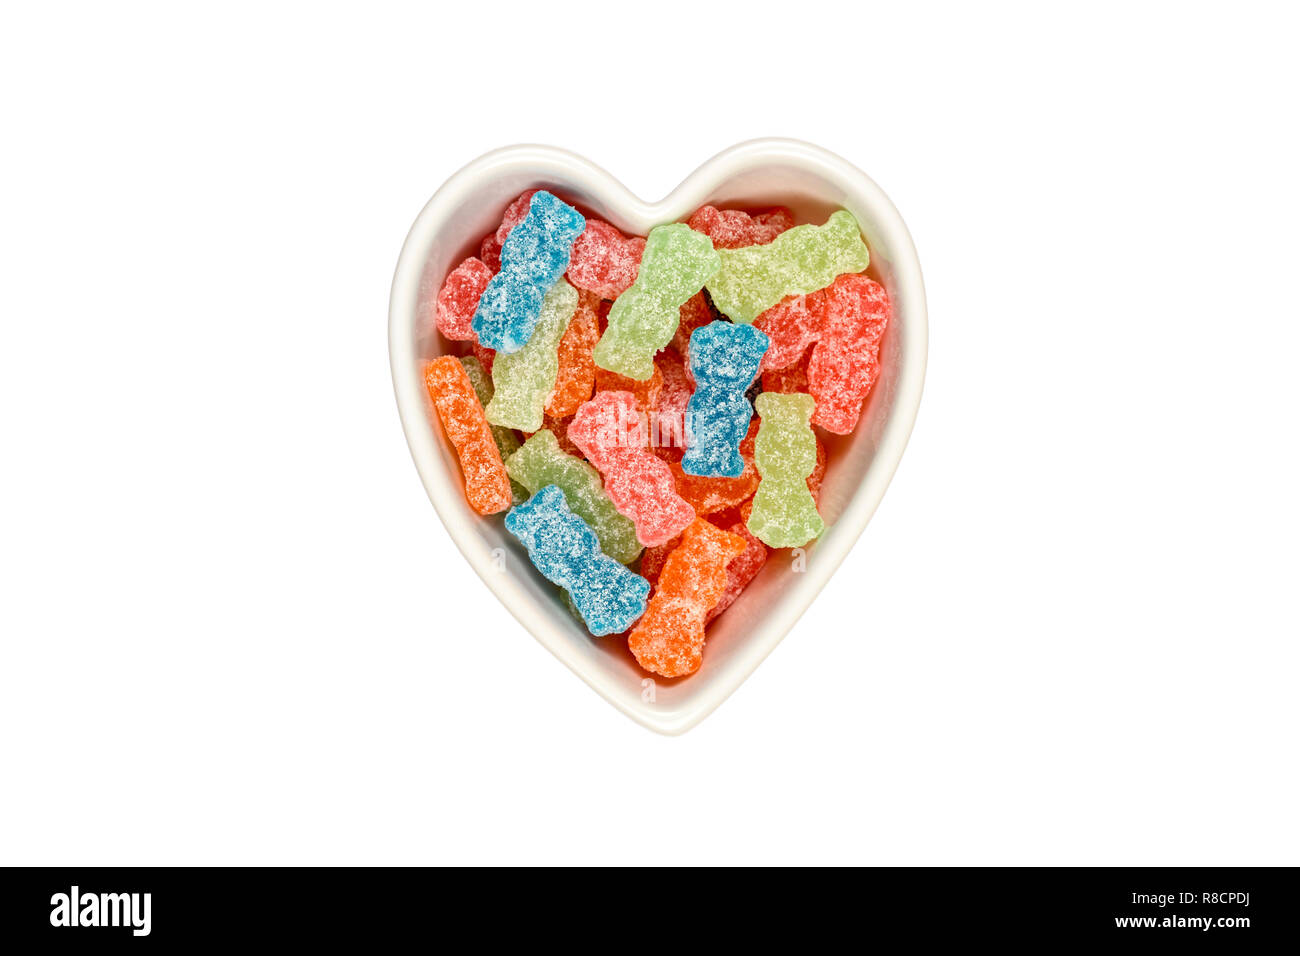 Variety of different color sweet and sour candy or sugar junk food in a heart shaped bowl  isolated on white with clipping path at ALL sizes. - Stock Image